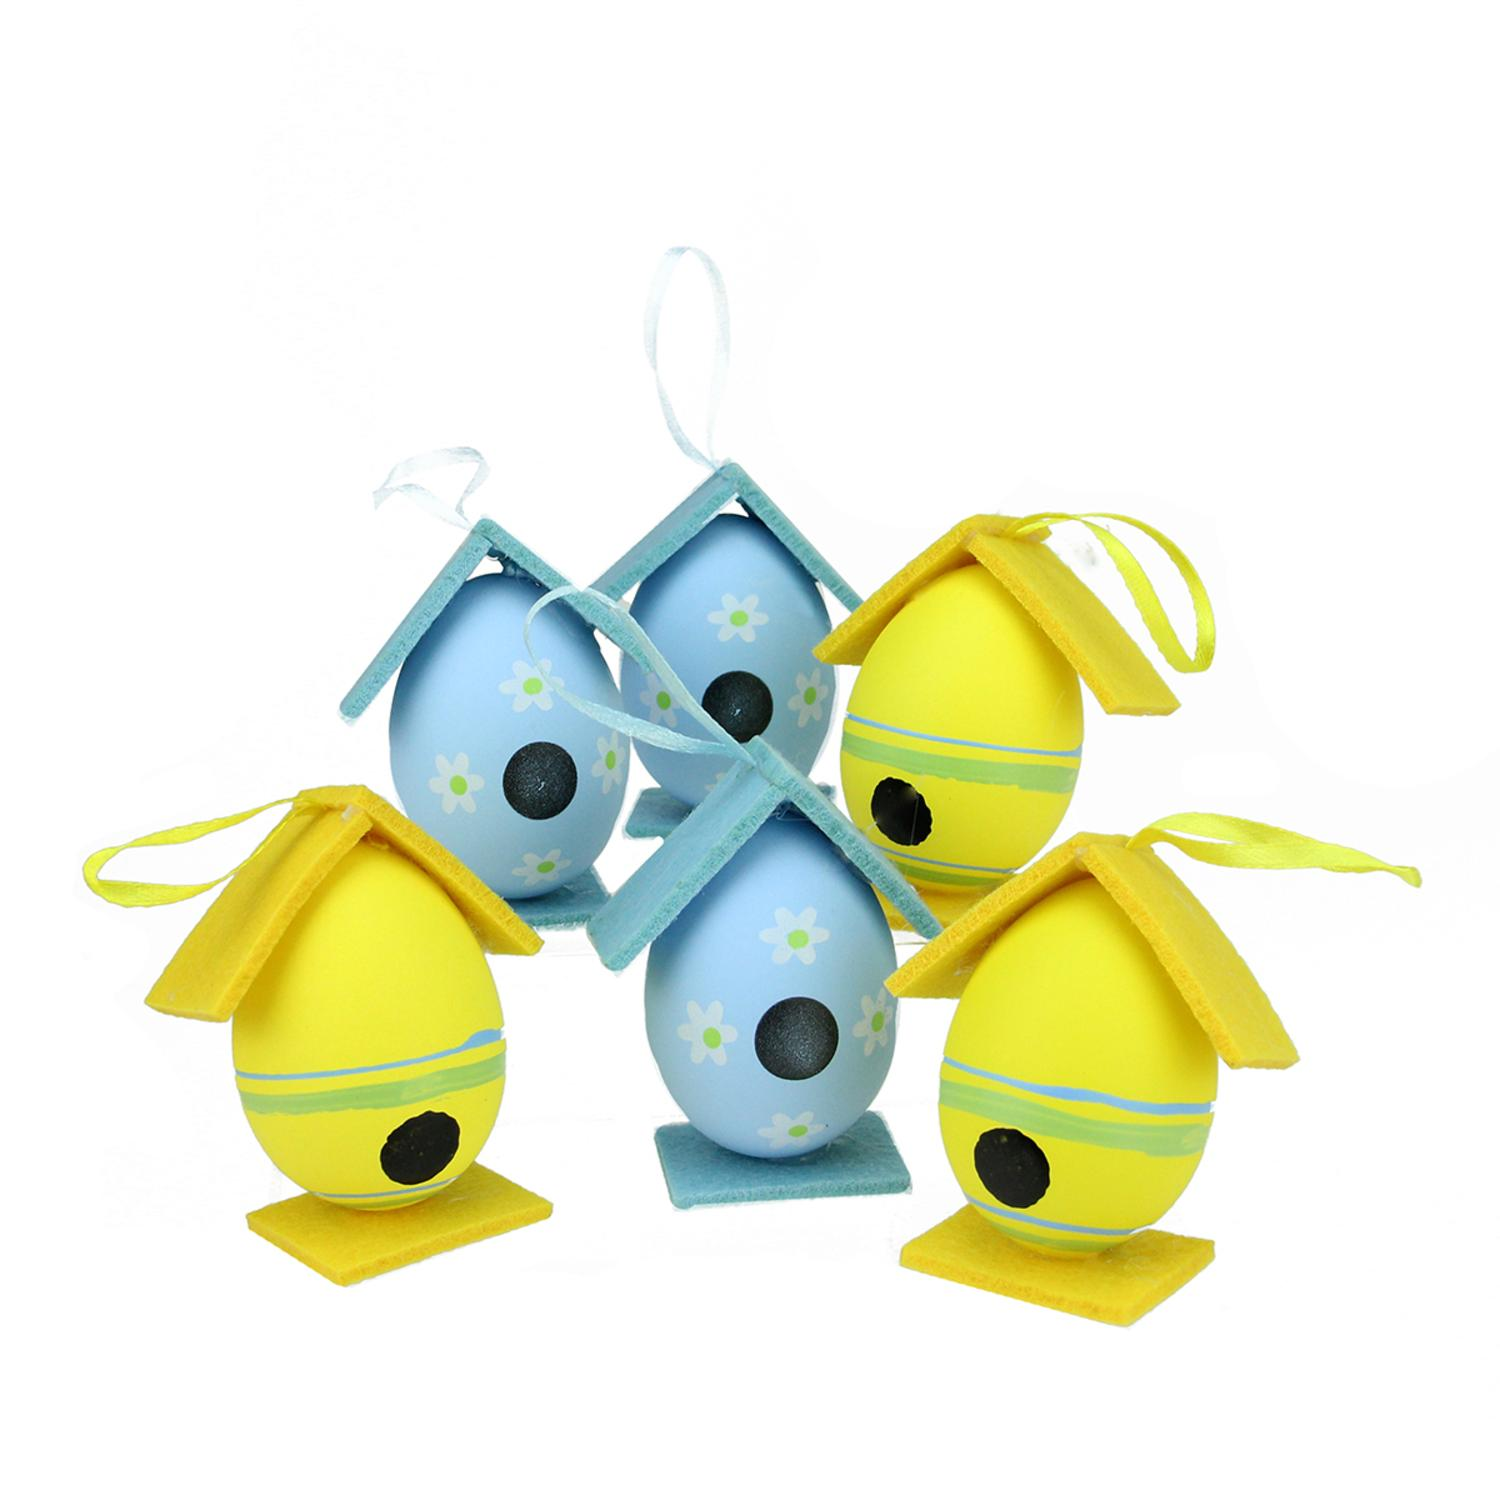 Set of 6 Yellow and Blue Decorative Floral Painted Design Spring Easter Egg Birdhouse Ornaments 3""